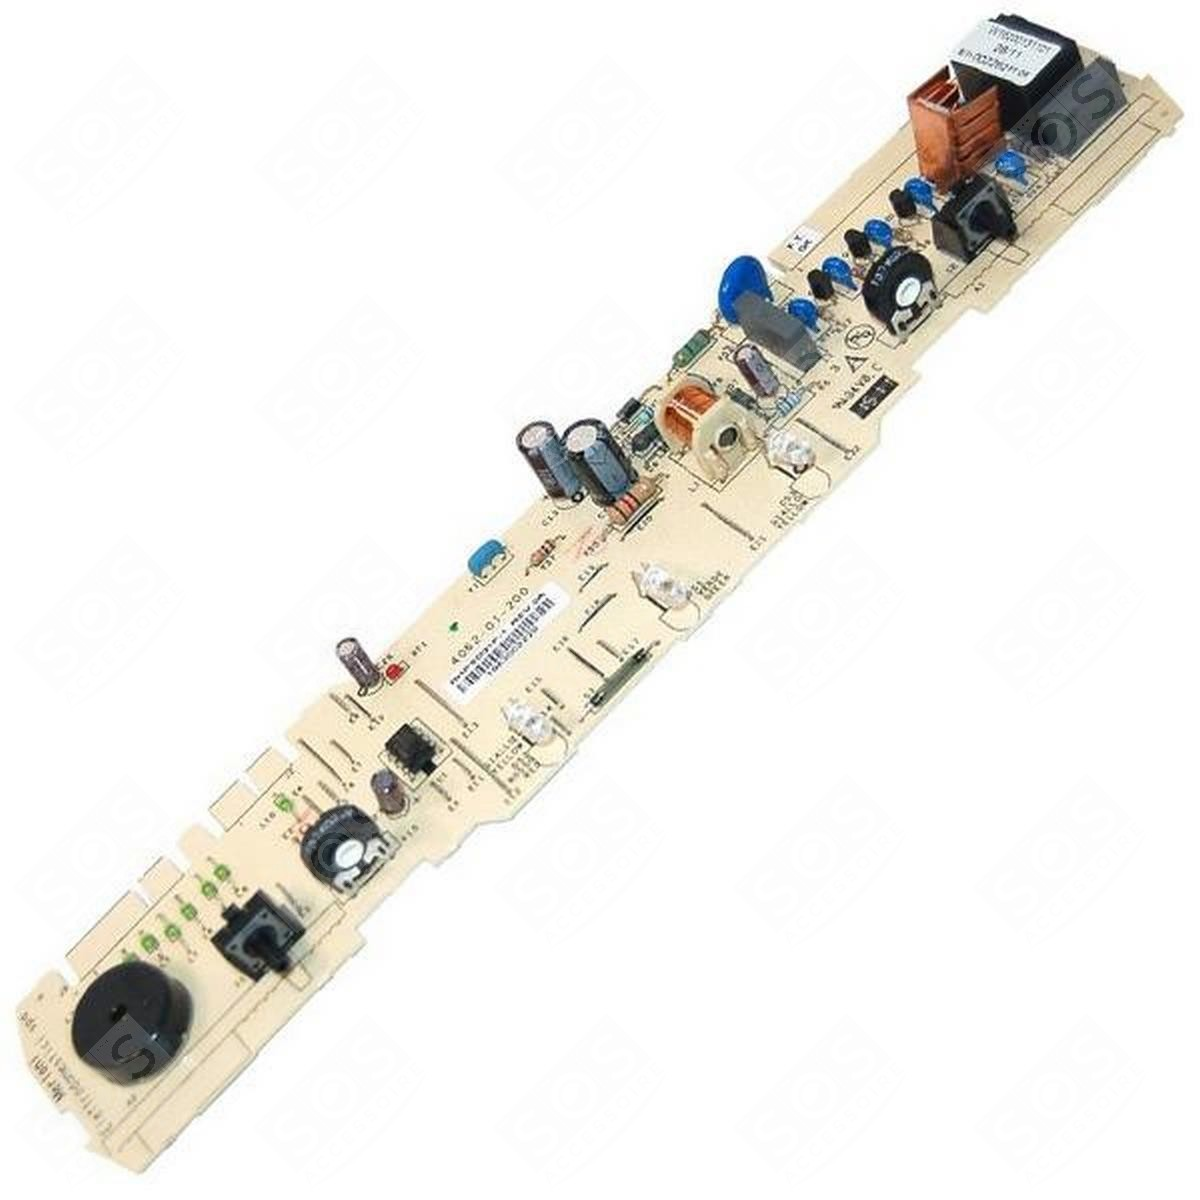 Main Circuit Board Ariston Hotpoint C00143689